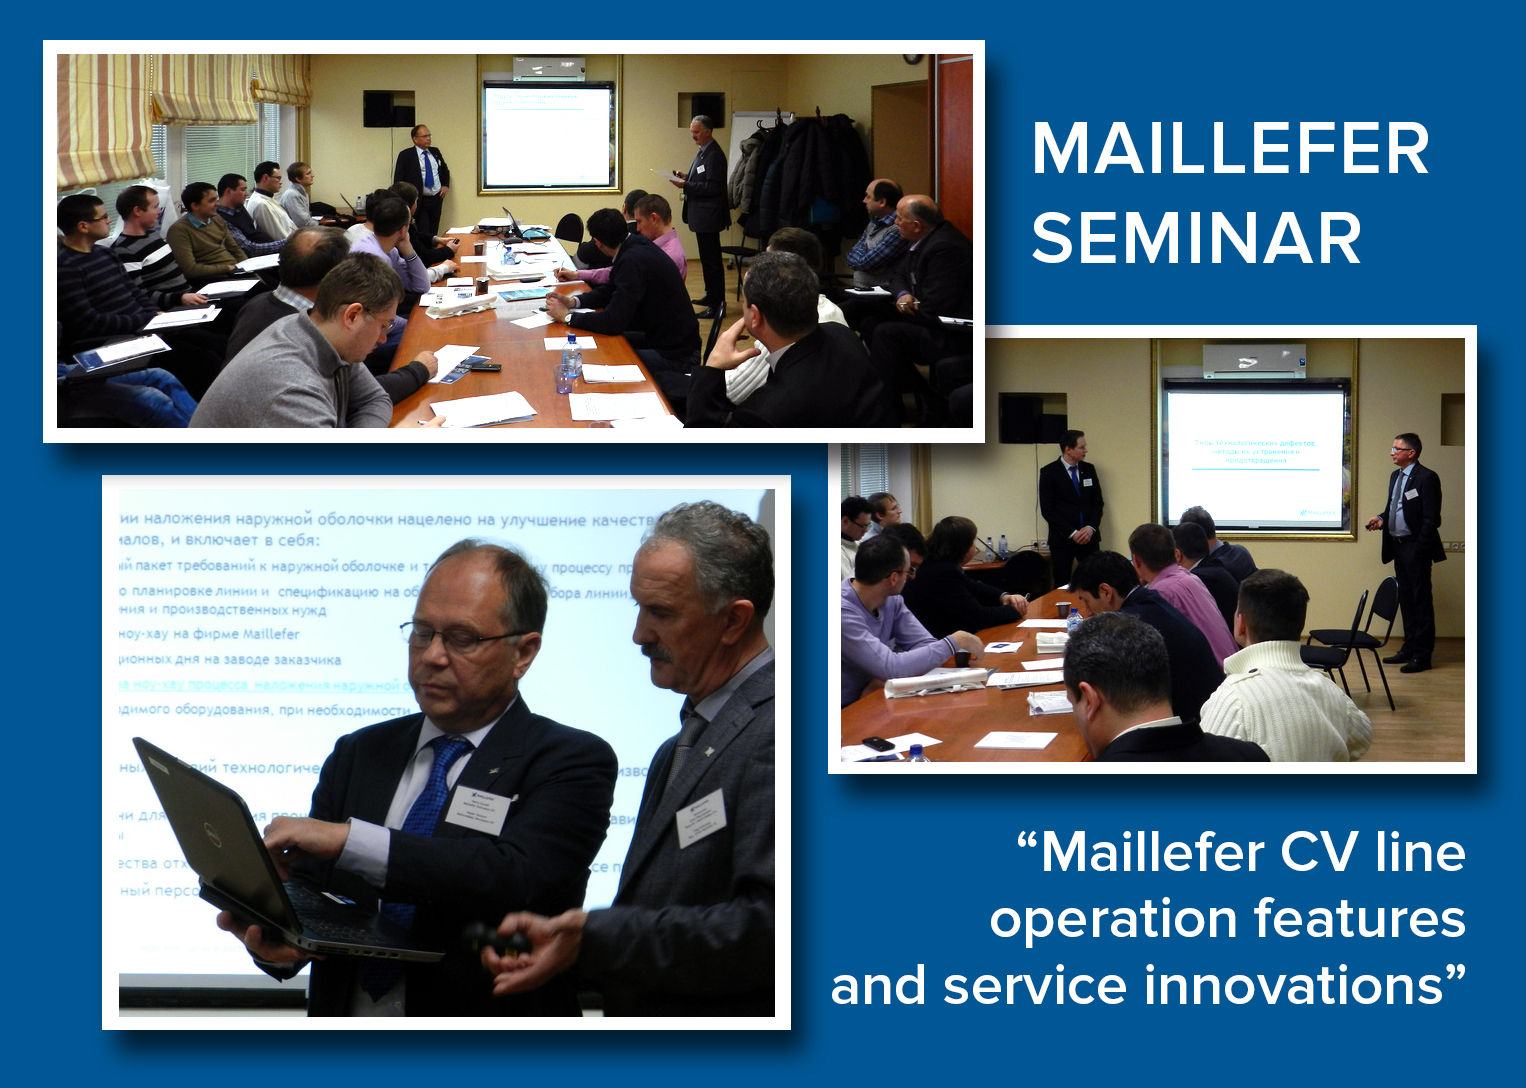 Fruitful Maillefer Seminar in Moscow